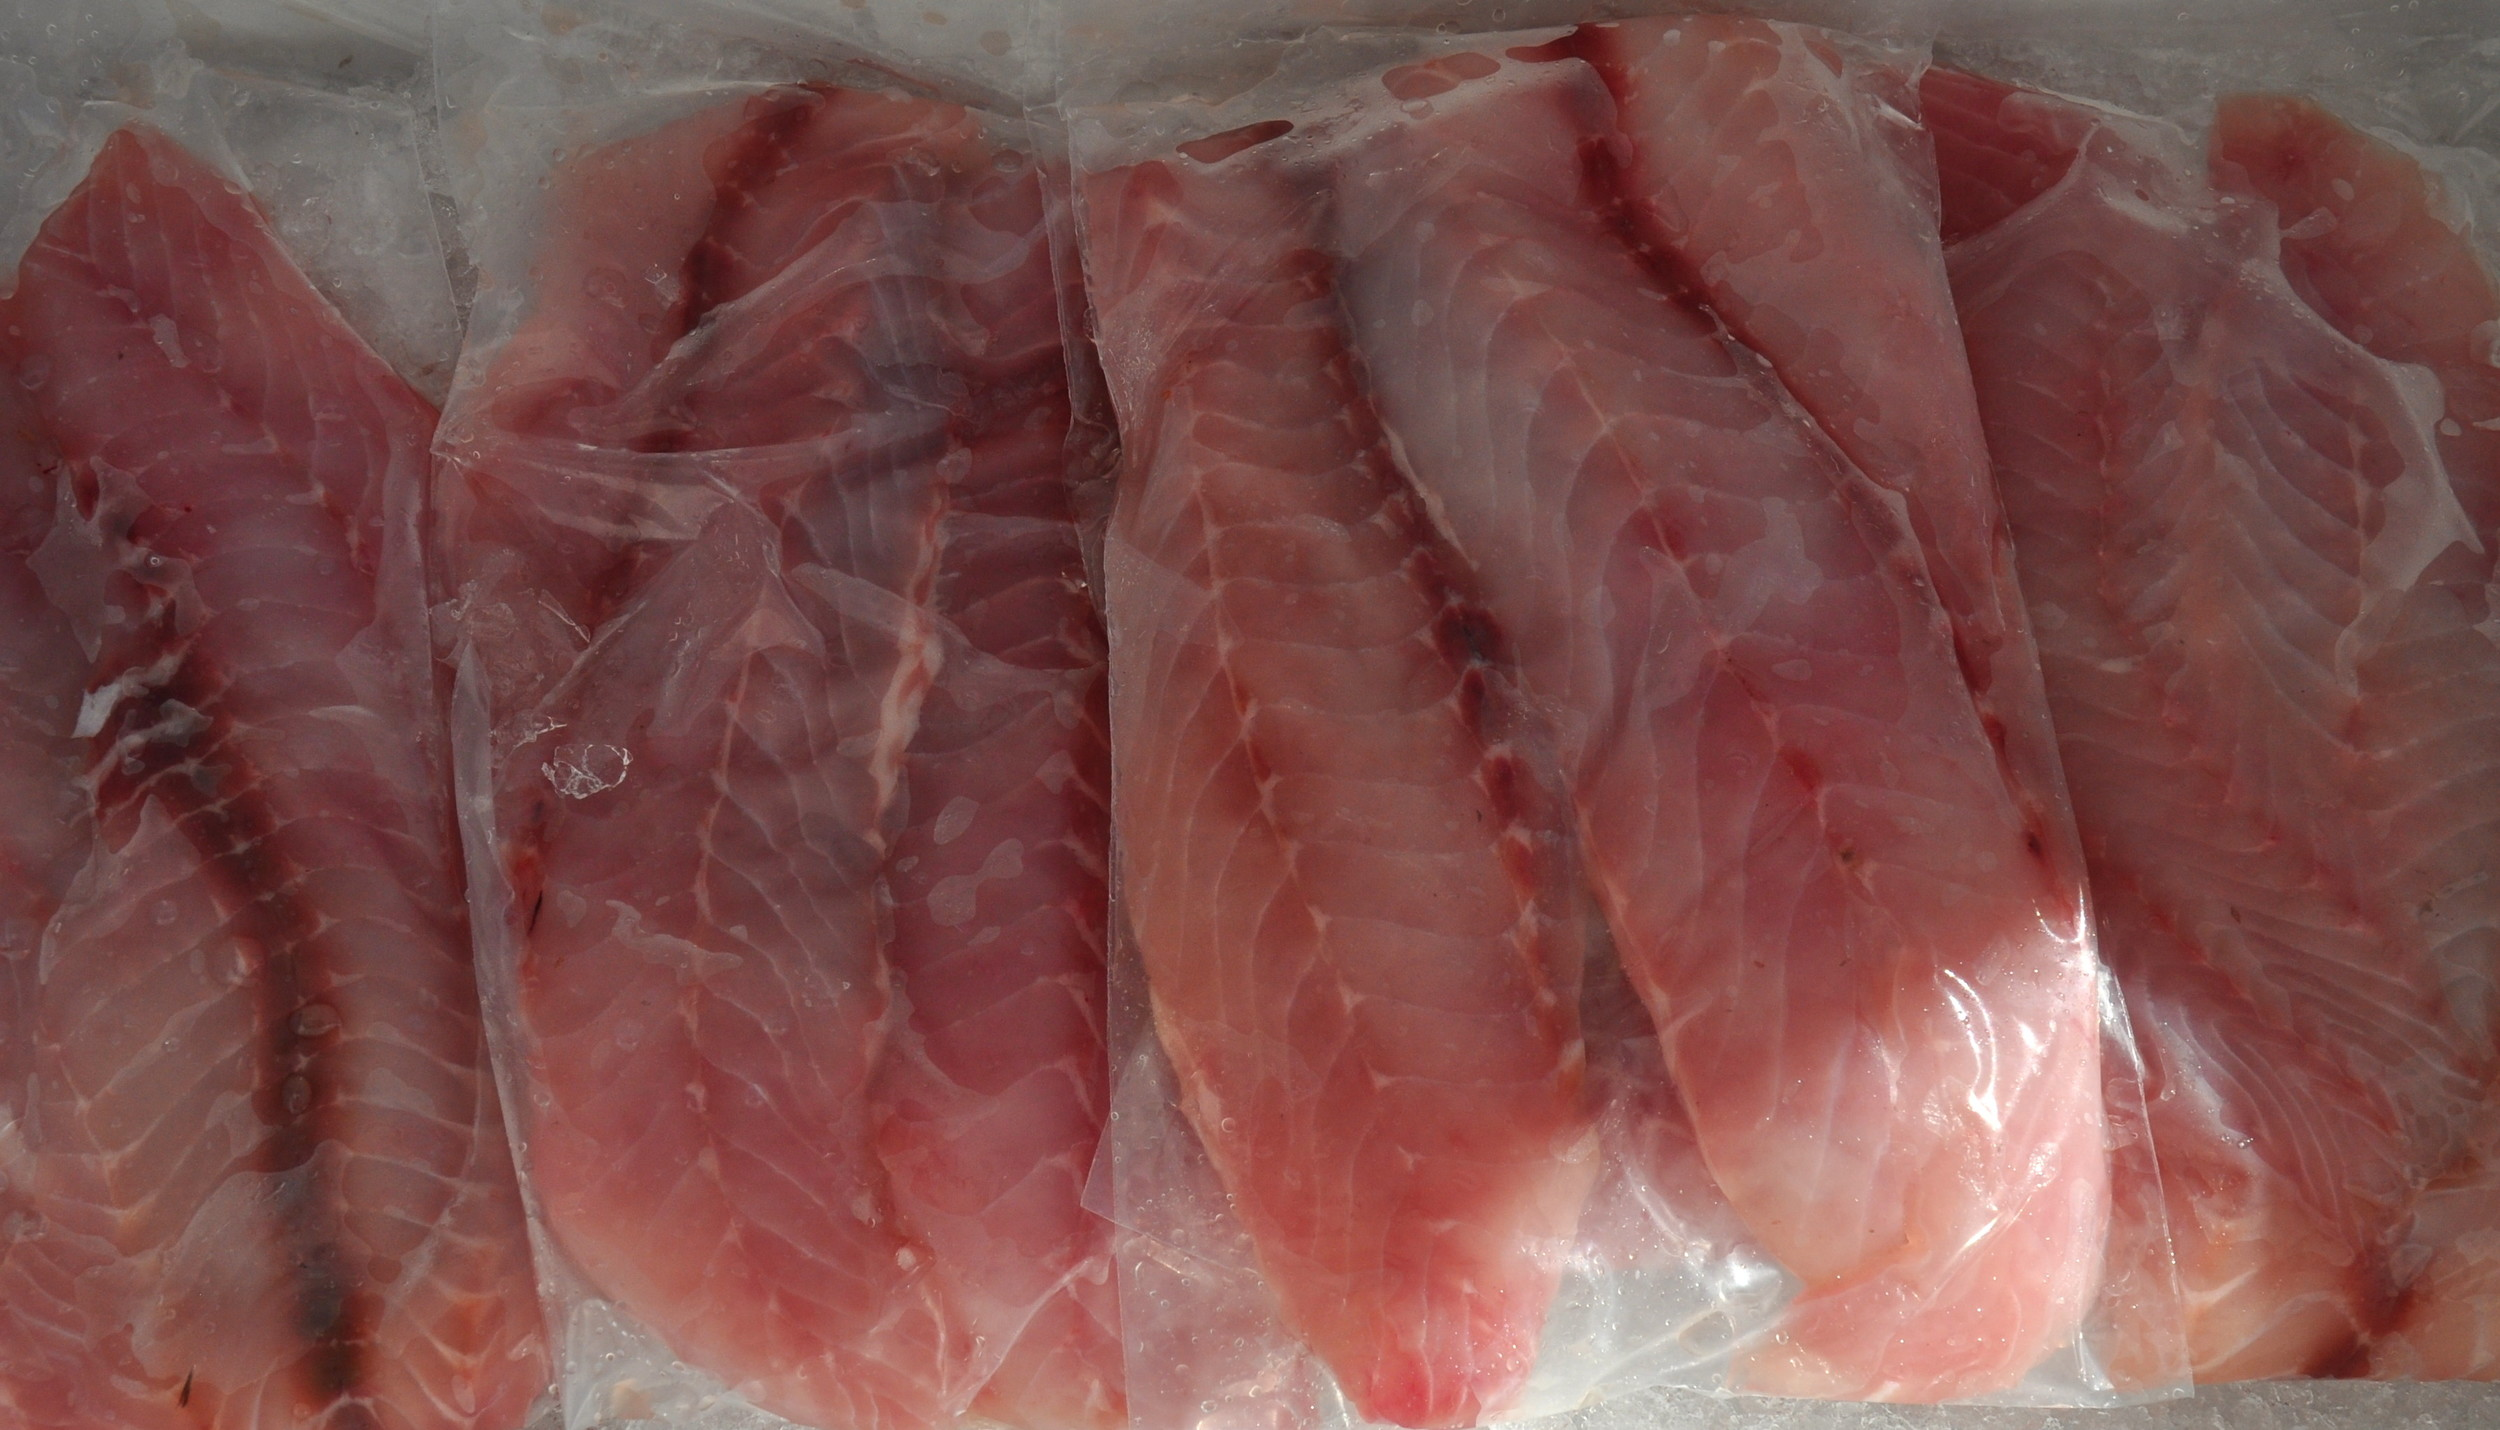 Fresh, local Rockfish from Wilson Fish. Photo copyright 2013 by Zachary D. Lyons.